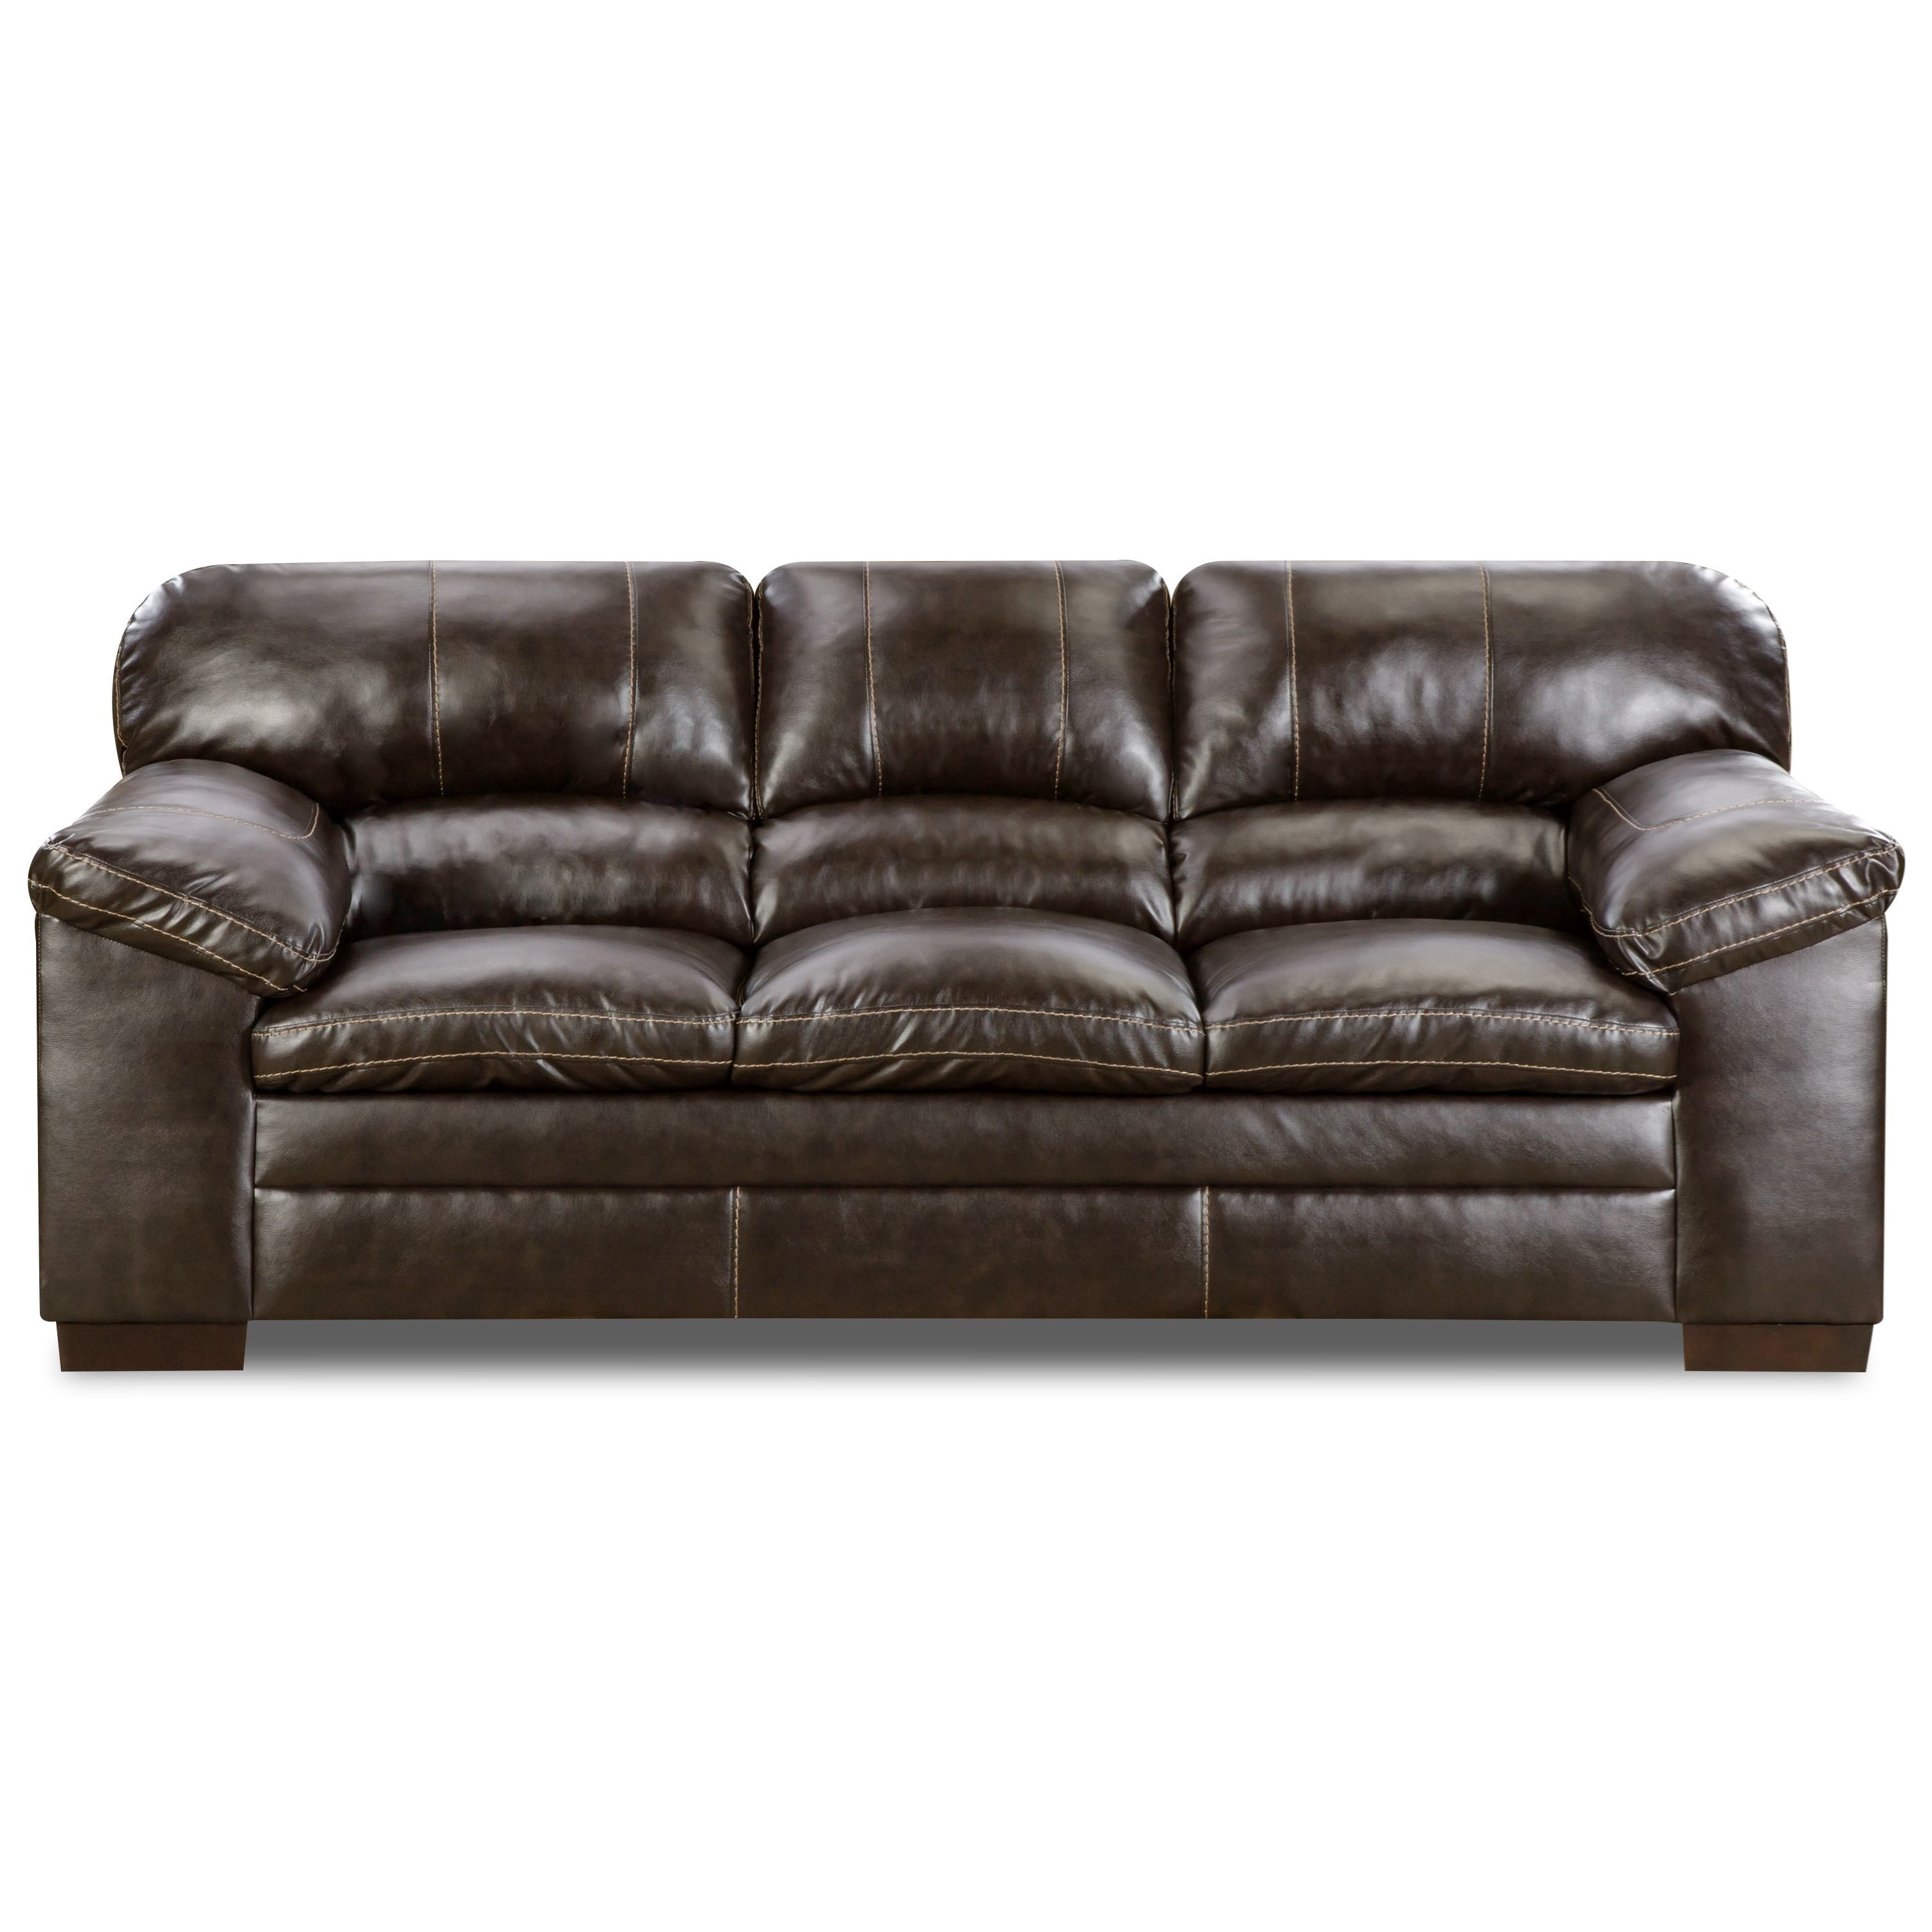 Simmons Upholstery 8049 Casual Sofa